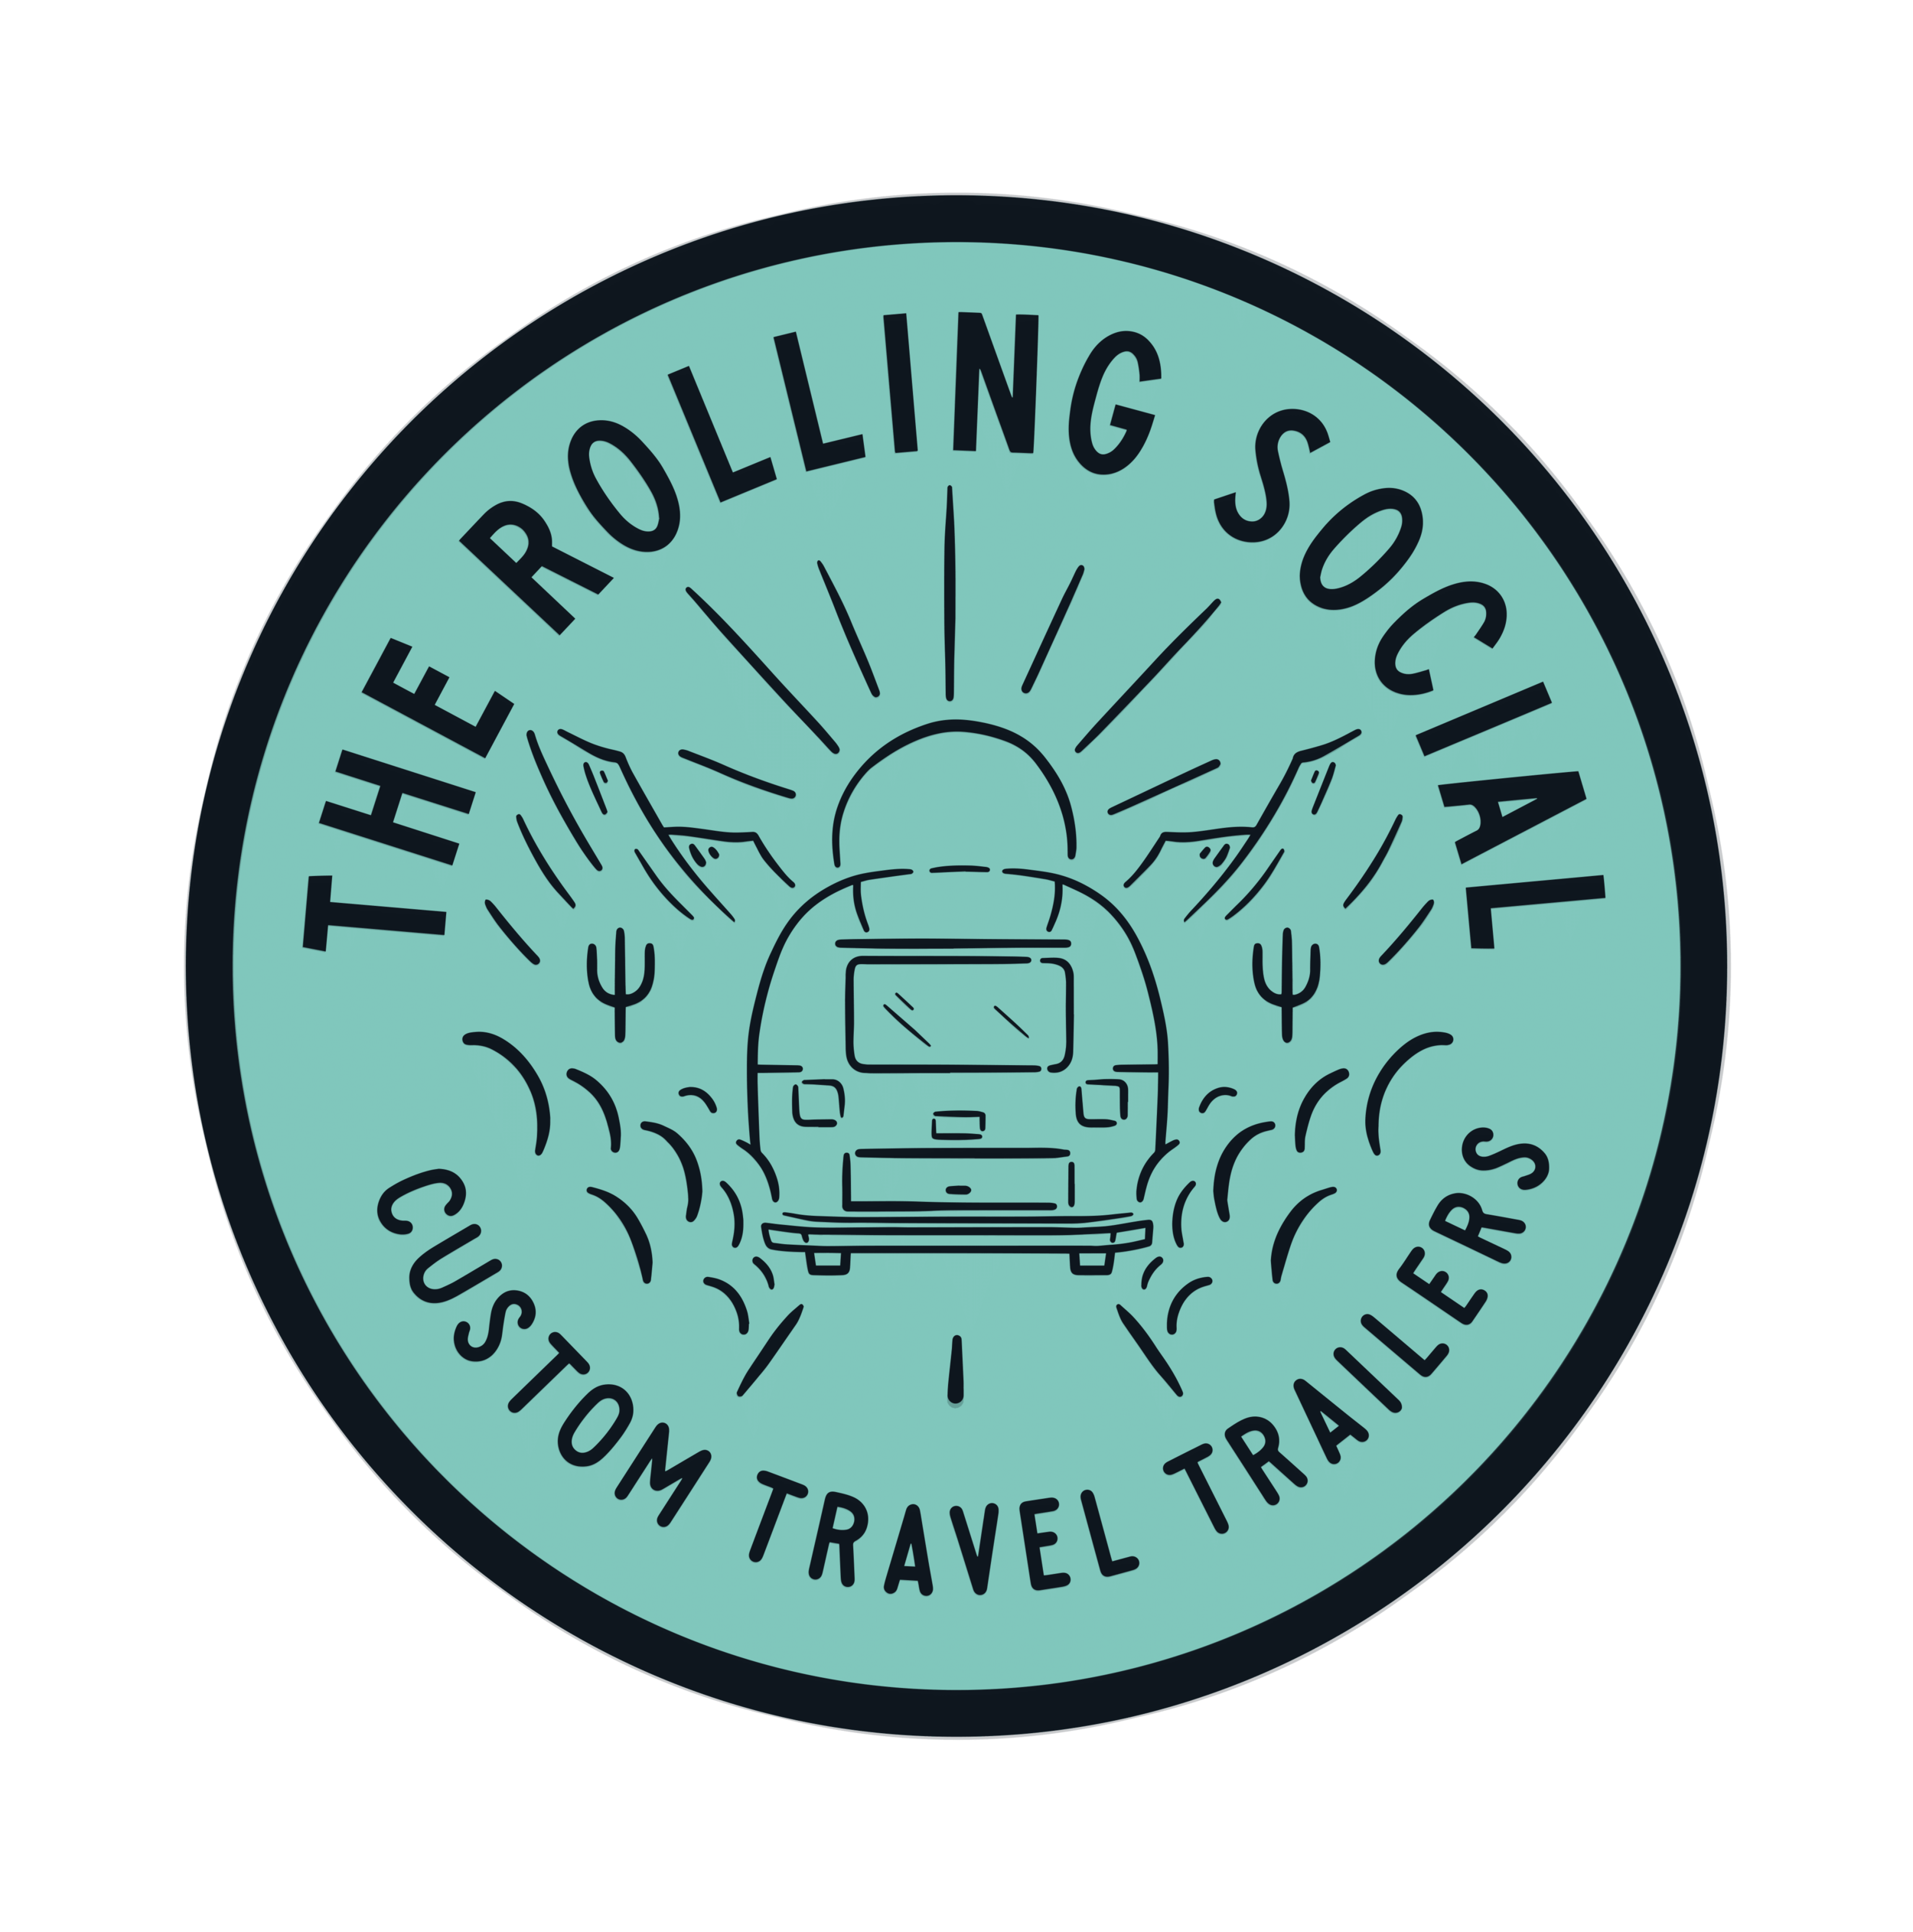 The-Rolling-Social-3_White-Background-1.png